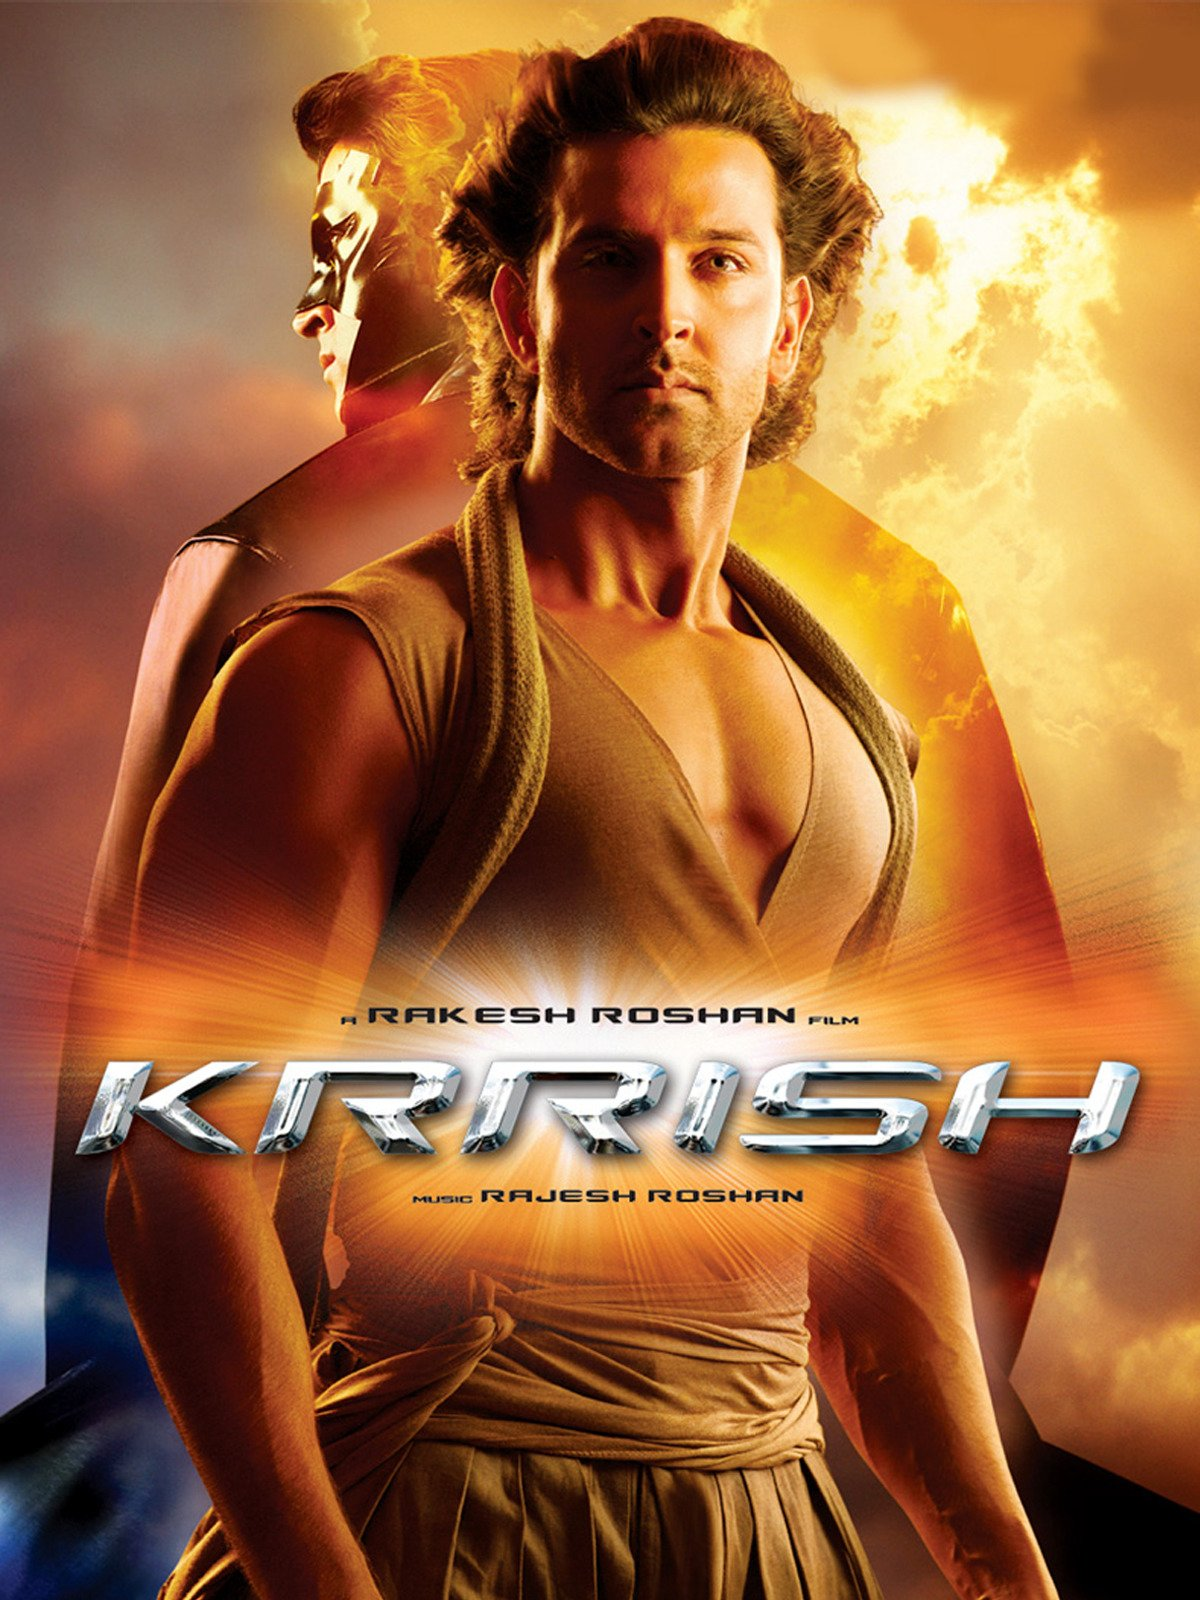 Krrish (2006) 1080p BluRay REMUX AVC DTS-HD MA 5.1 – HDVN |  |